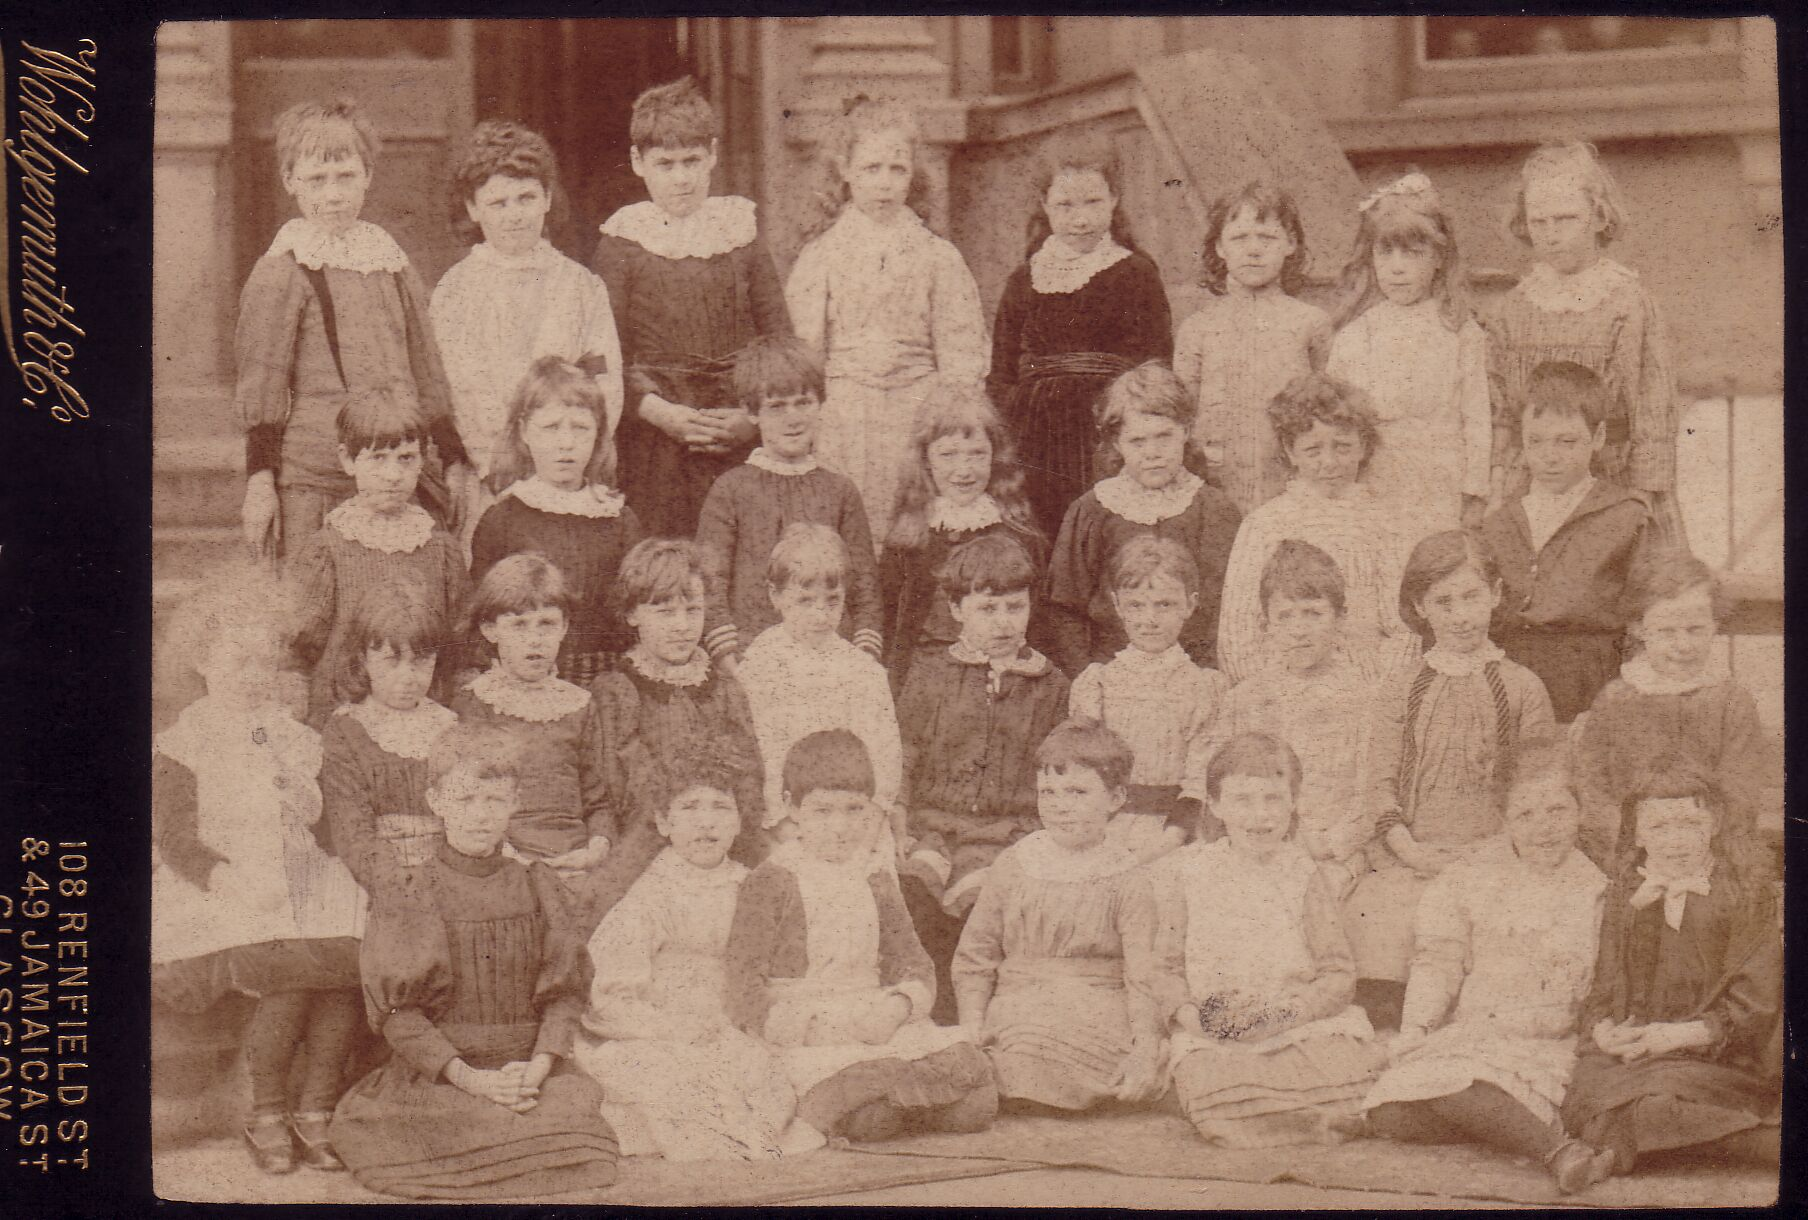 Edinburgh Ladies College Class Portrait c.1892